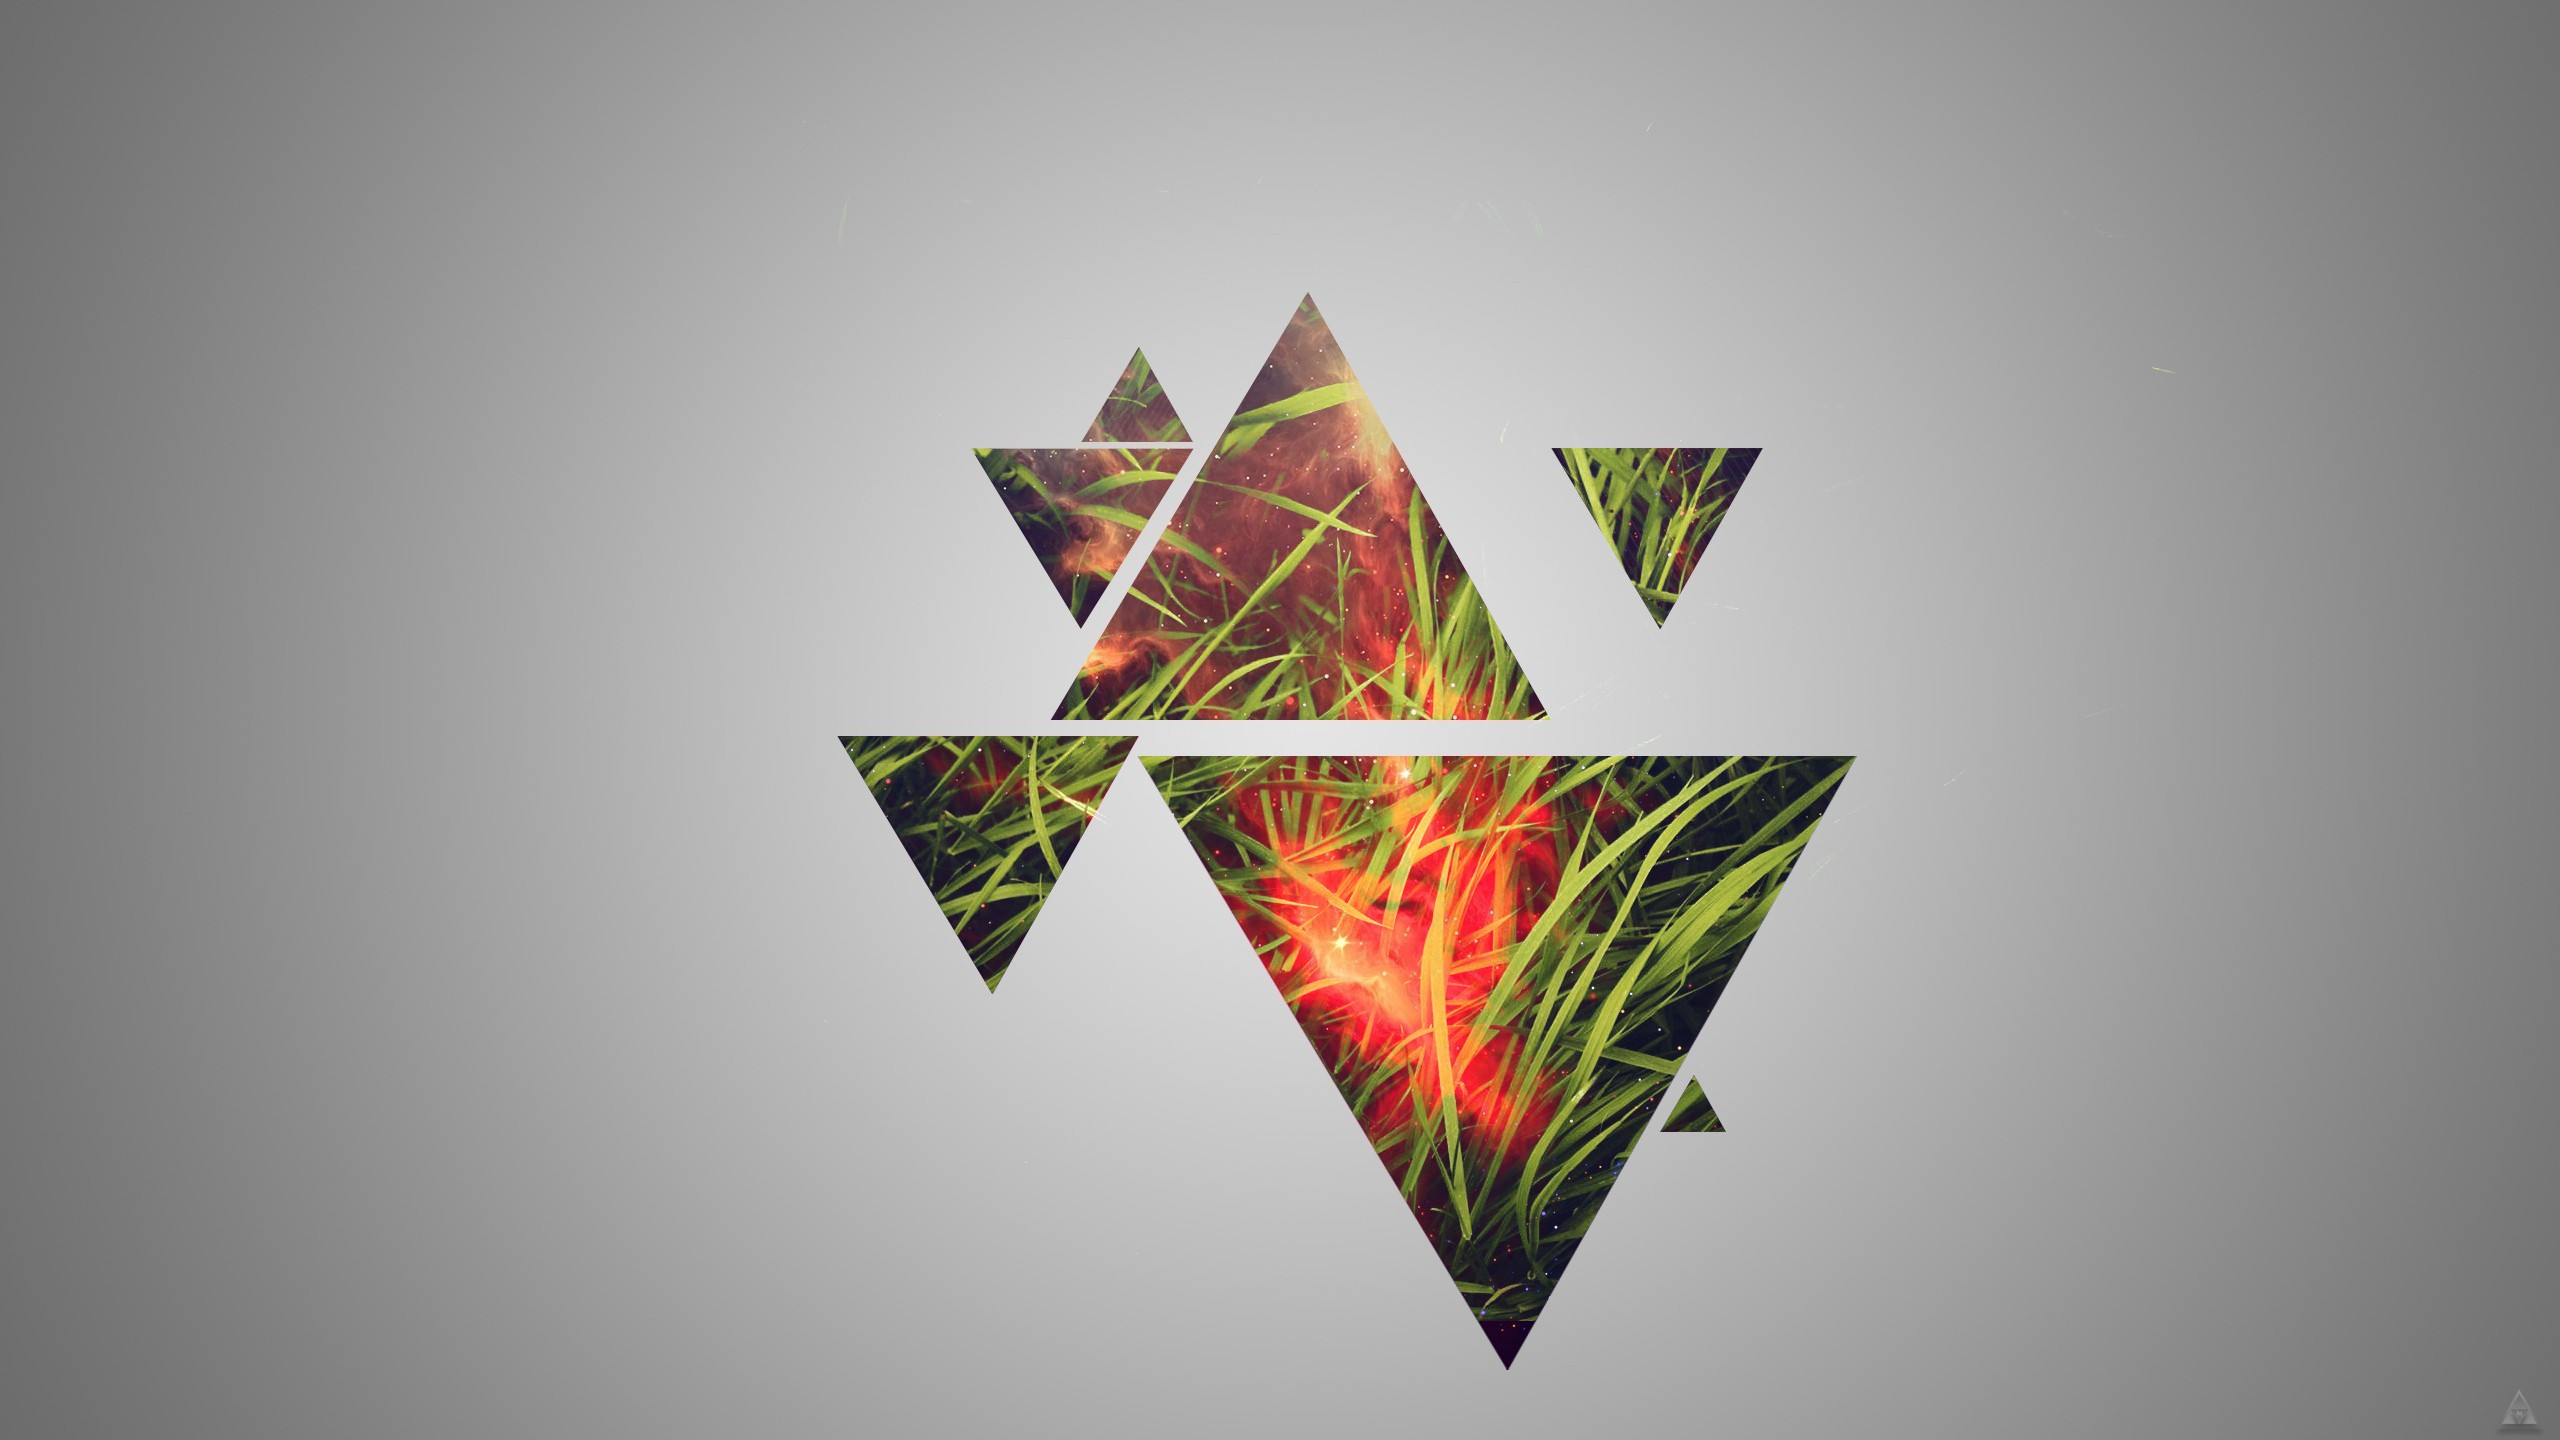 Cute Minimalistic Wallpapers Grass Triangle Hd Artist 4k Wallpapers Images